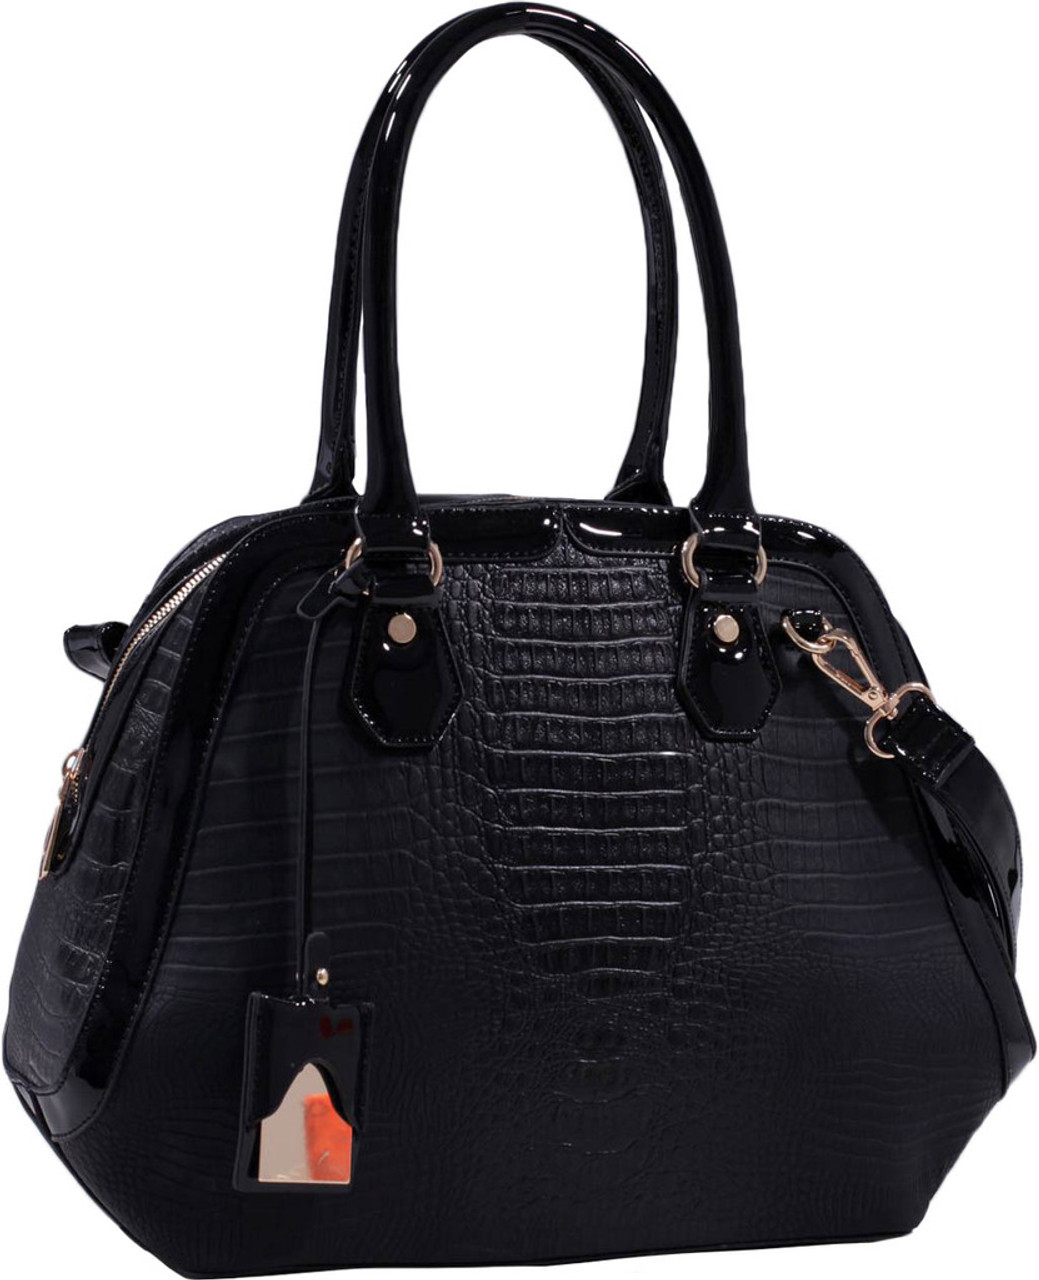 c0c1fbf59a2 Black Alligator Vegan Leather Shoulder Bag Purse Handbag - Purses.com